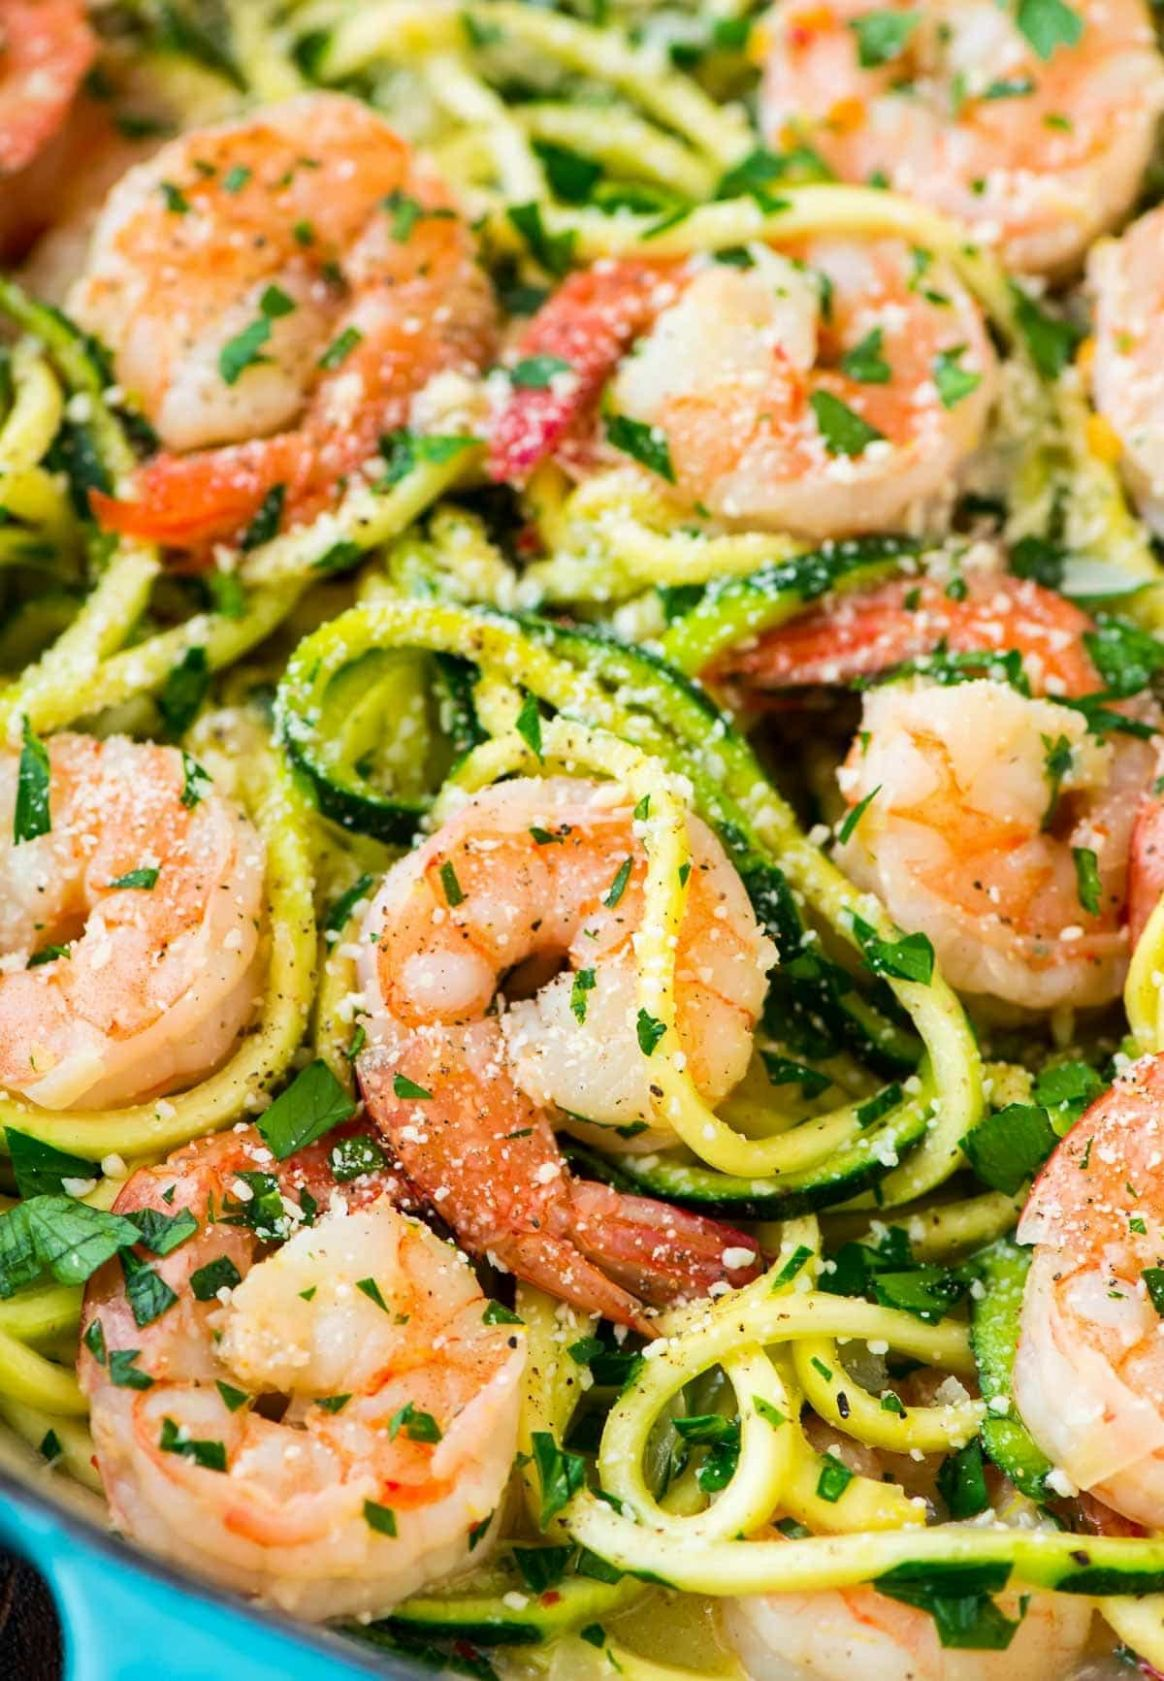 Healthy Shrimp Scampi with Zucchini Noodles - Healthy Recipes Zucchini